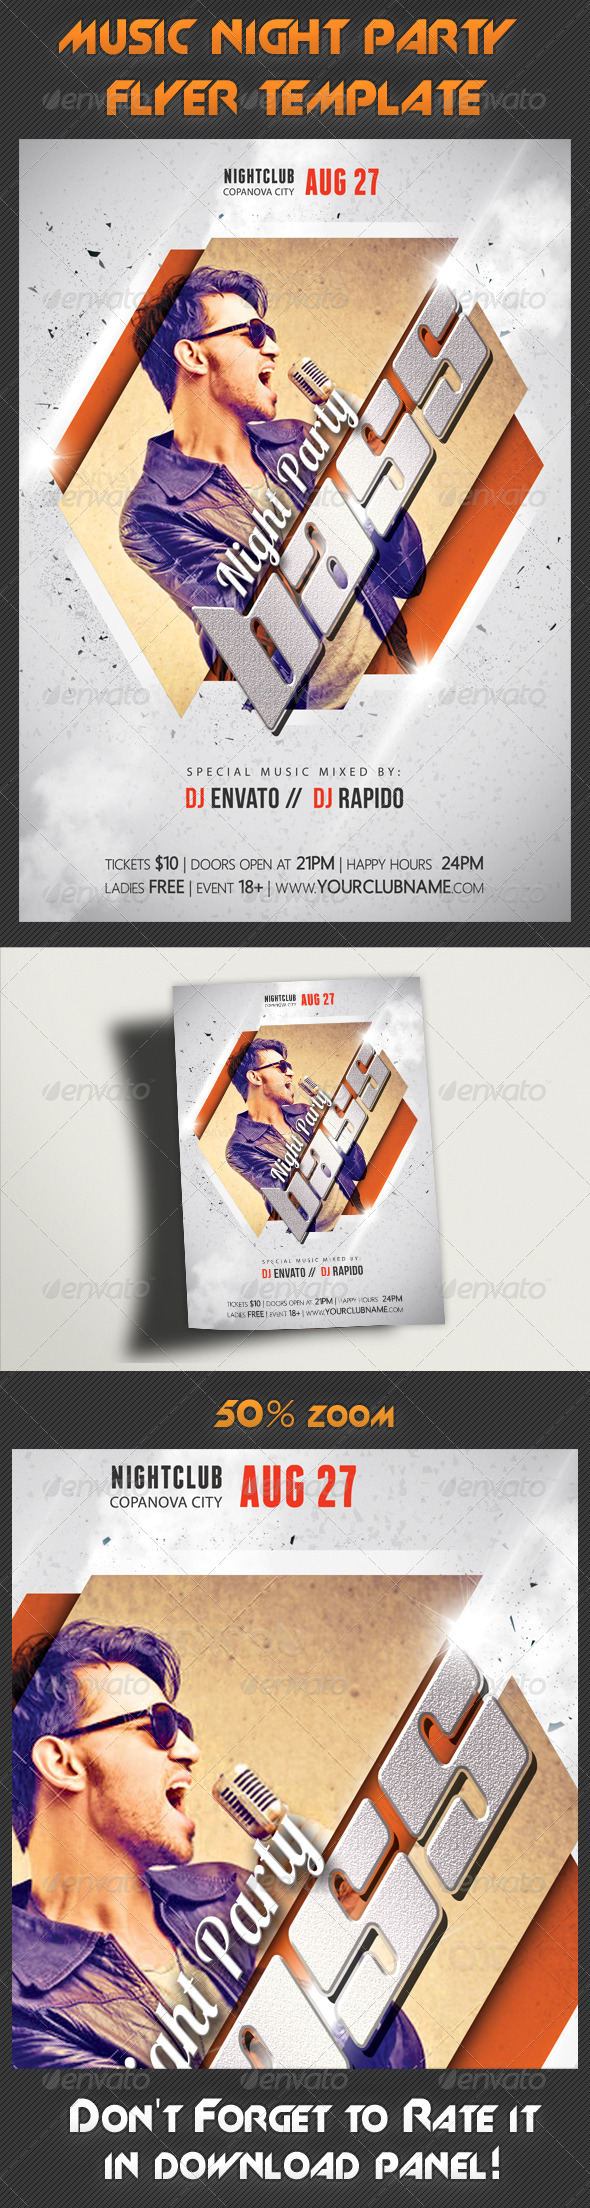 GraphicRiver Music Night Party Flyer Template 18 7896363